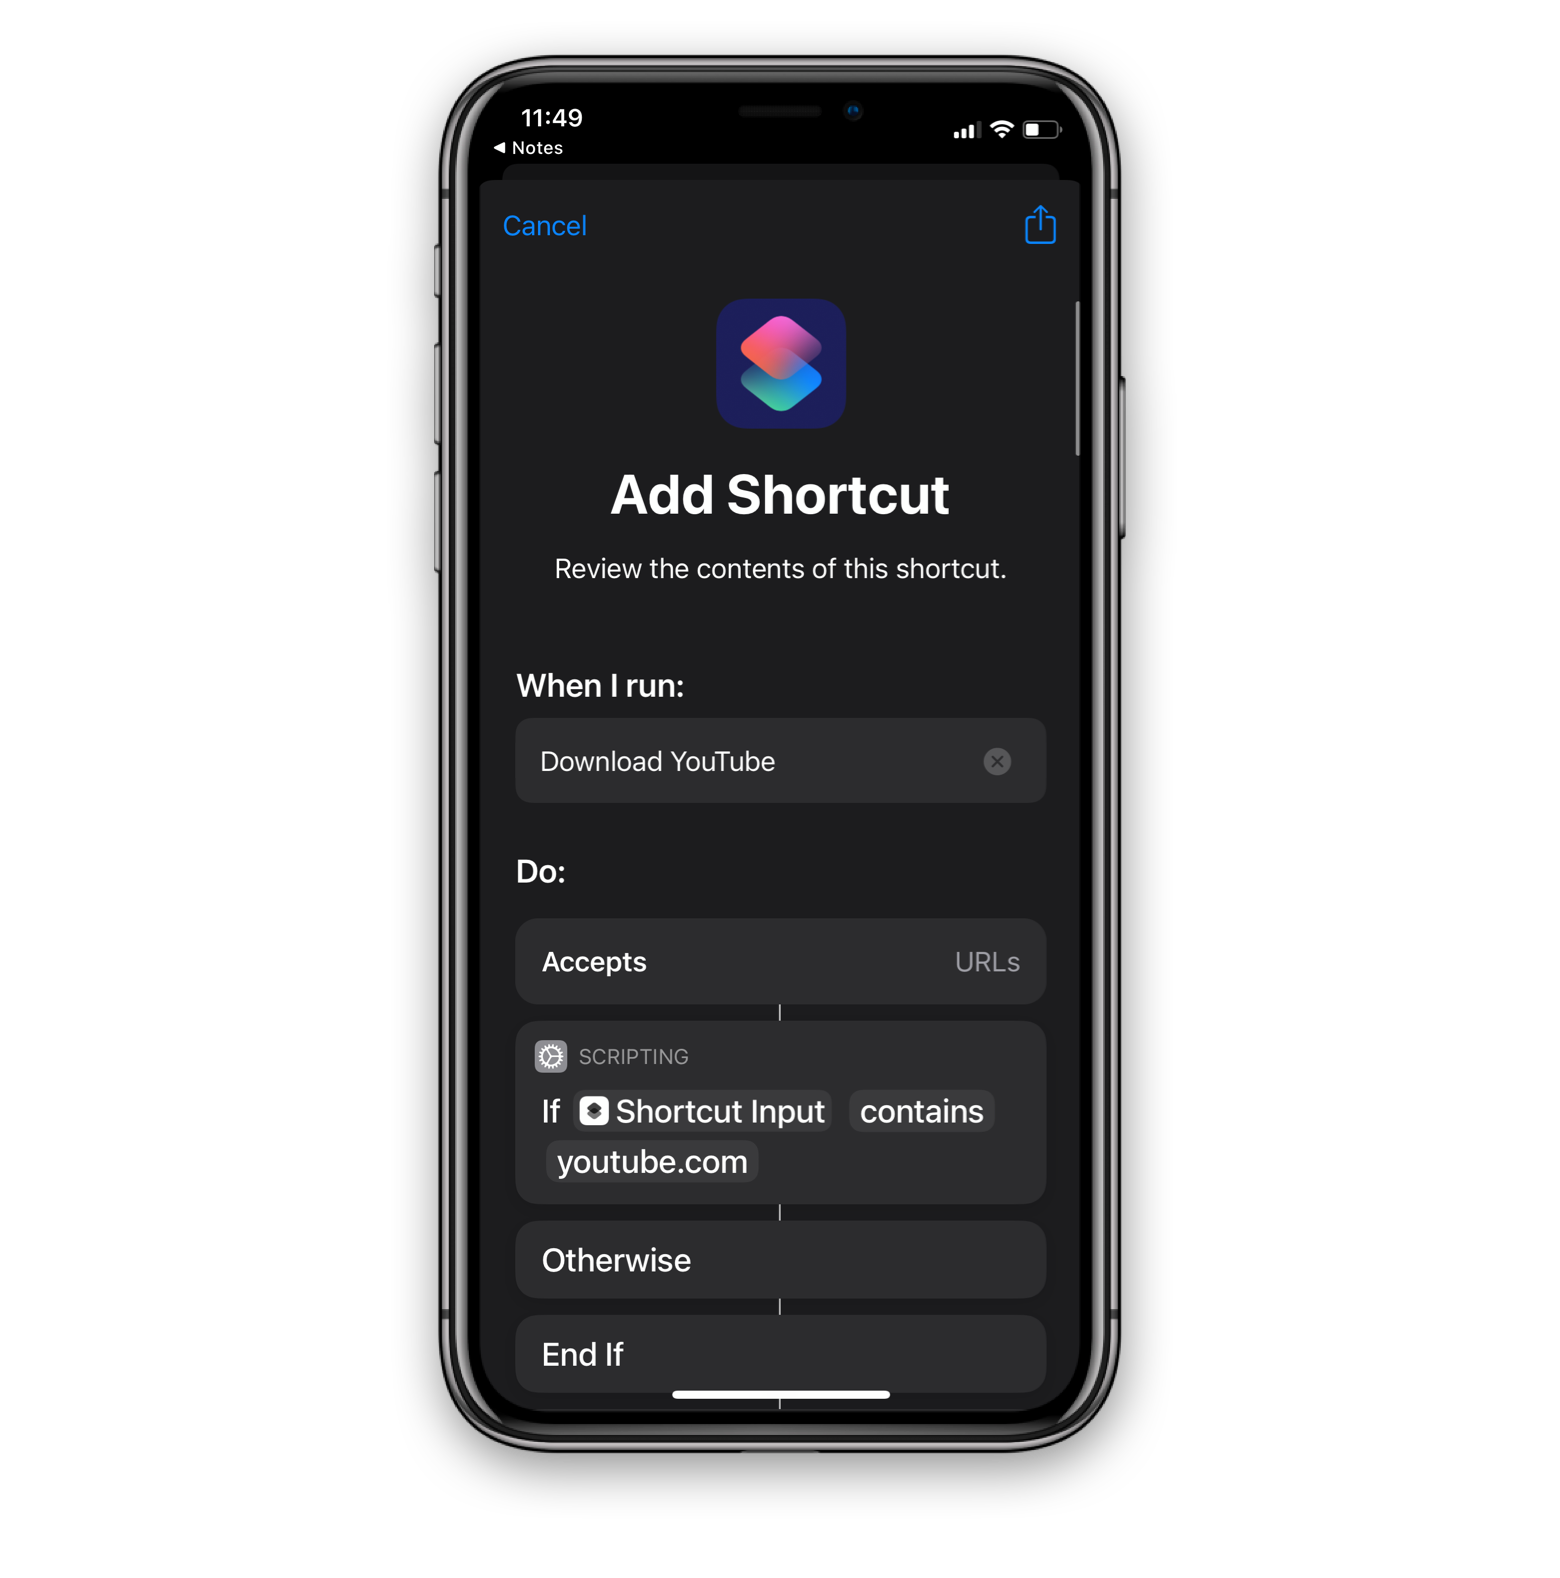 download from Youtube with iPhone's Stortcuts